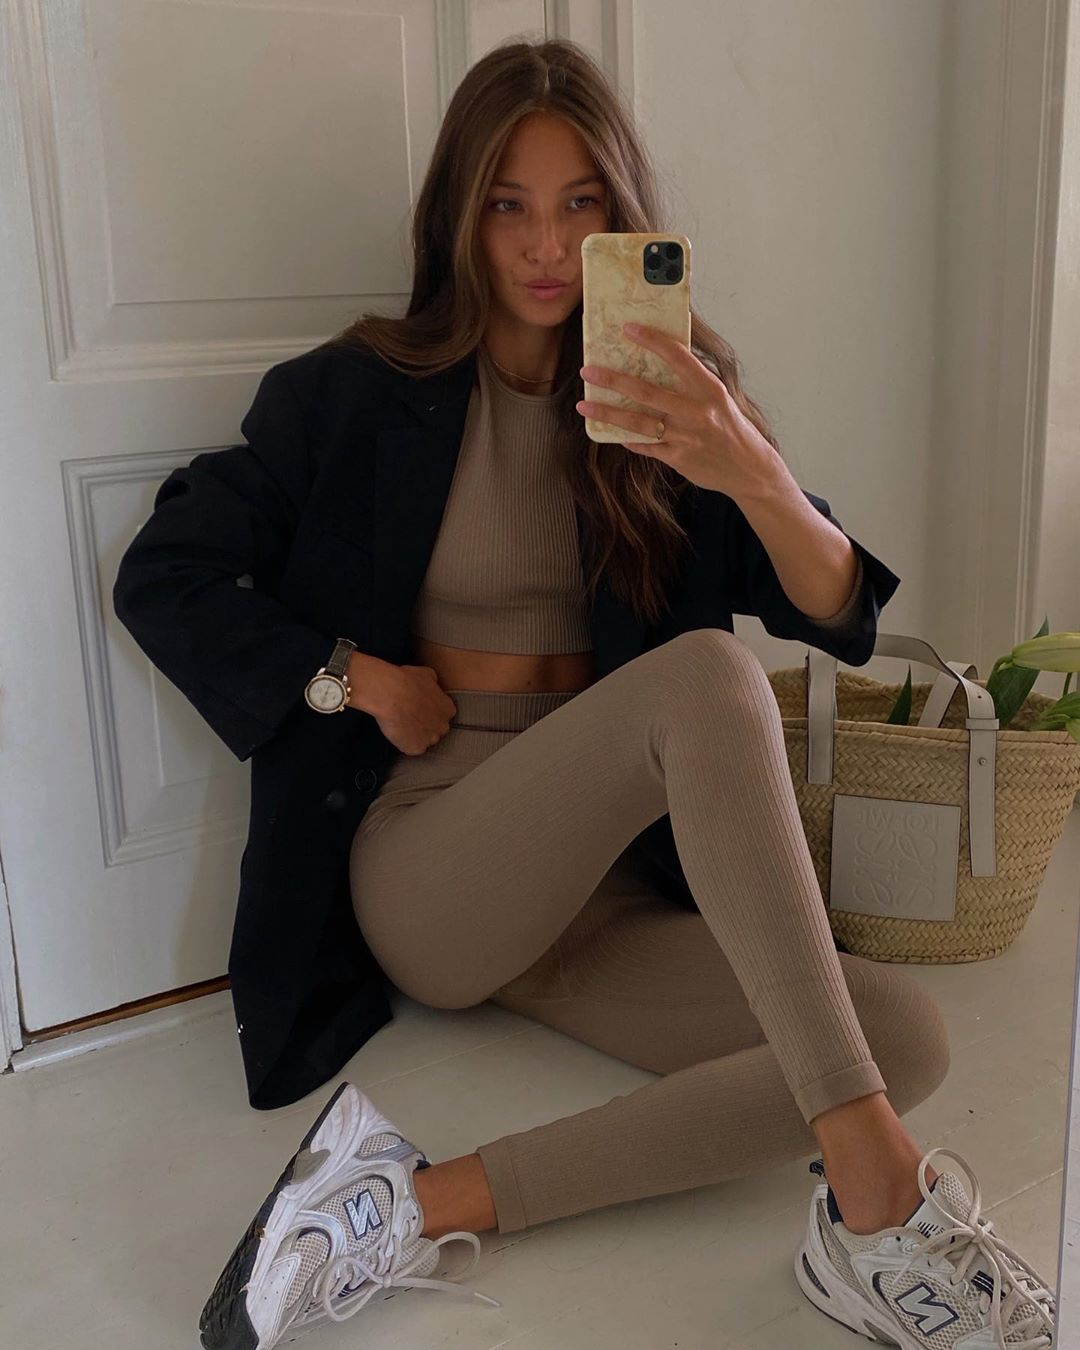 Felicia Akerstrom in a stylish activewear outfit — loungewear style with neutral ribbed top and matching leggings